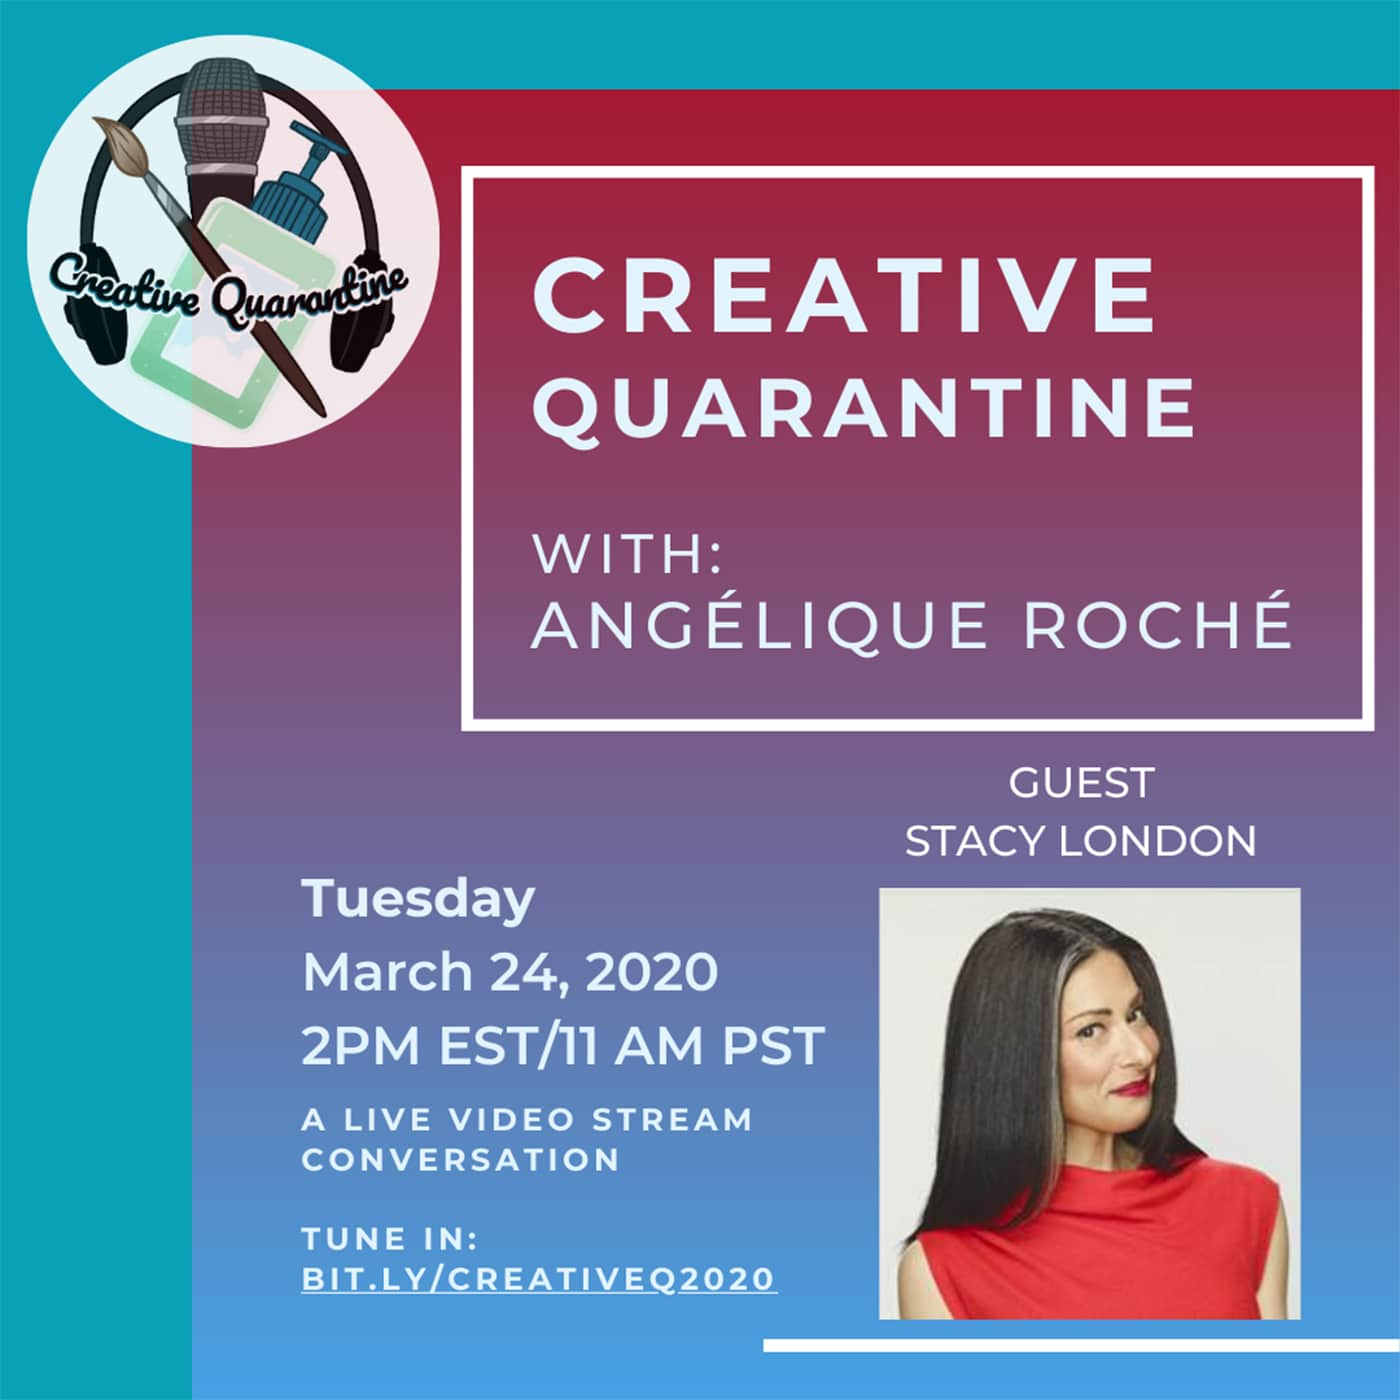 Creative Quarantine with Stacy London